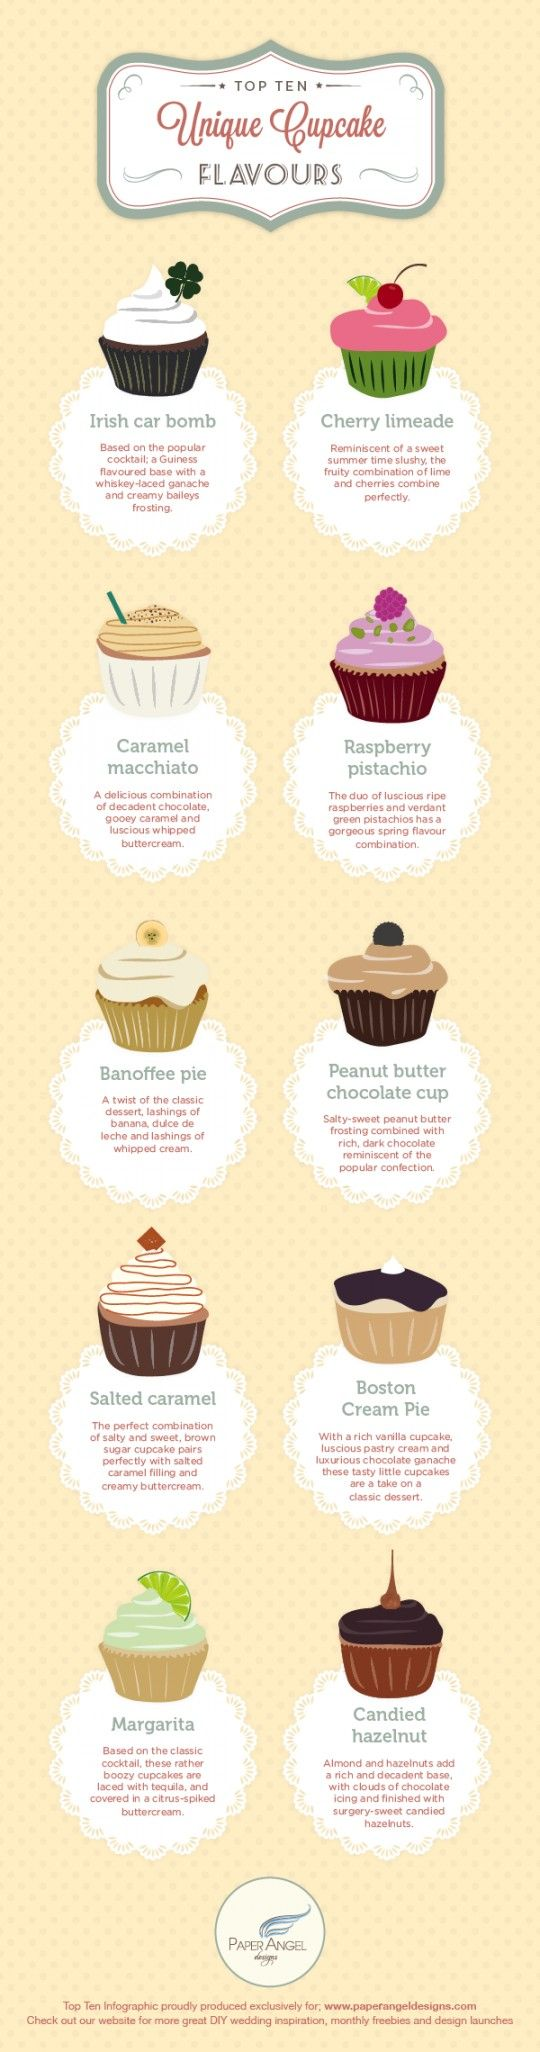 365 Creative Cupcake Shop Name Ideas Ever With Images Cupcake